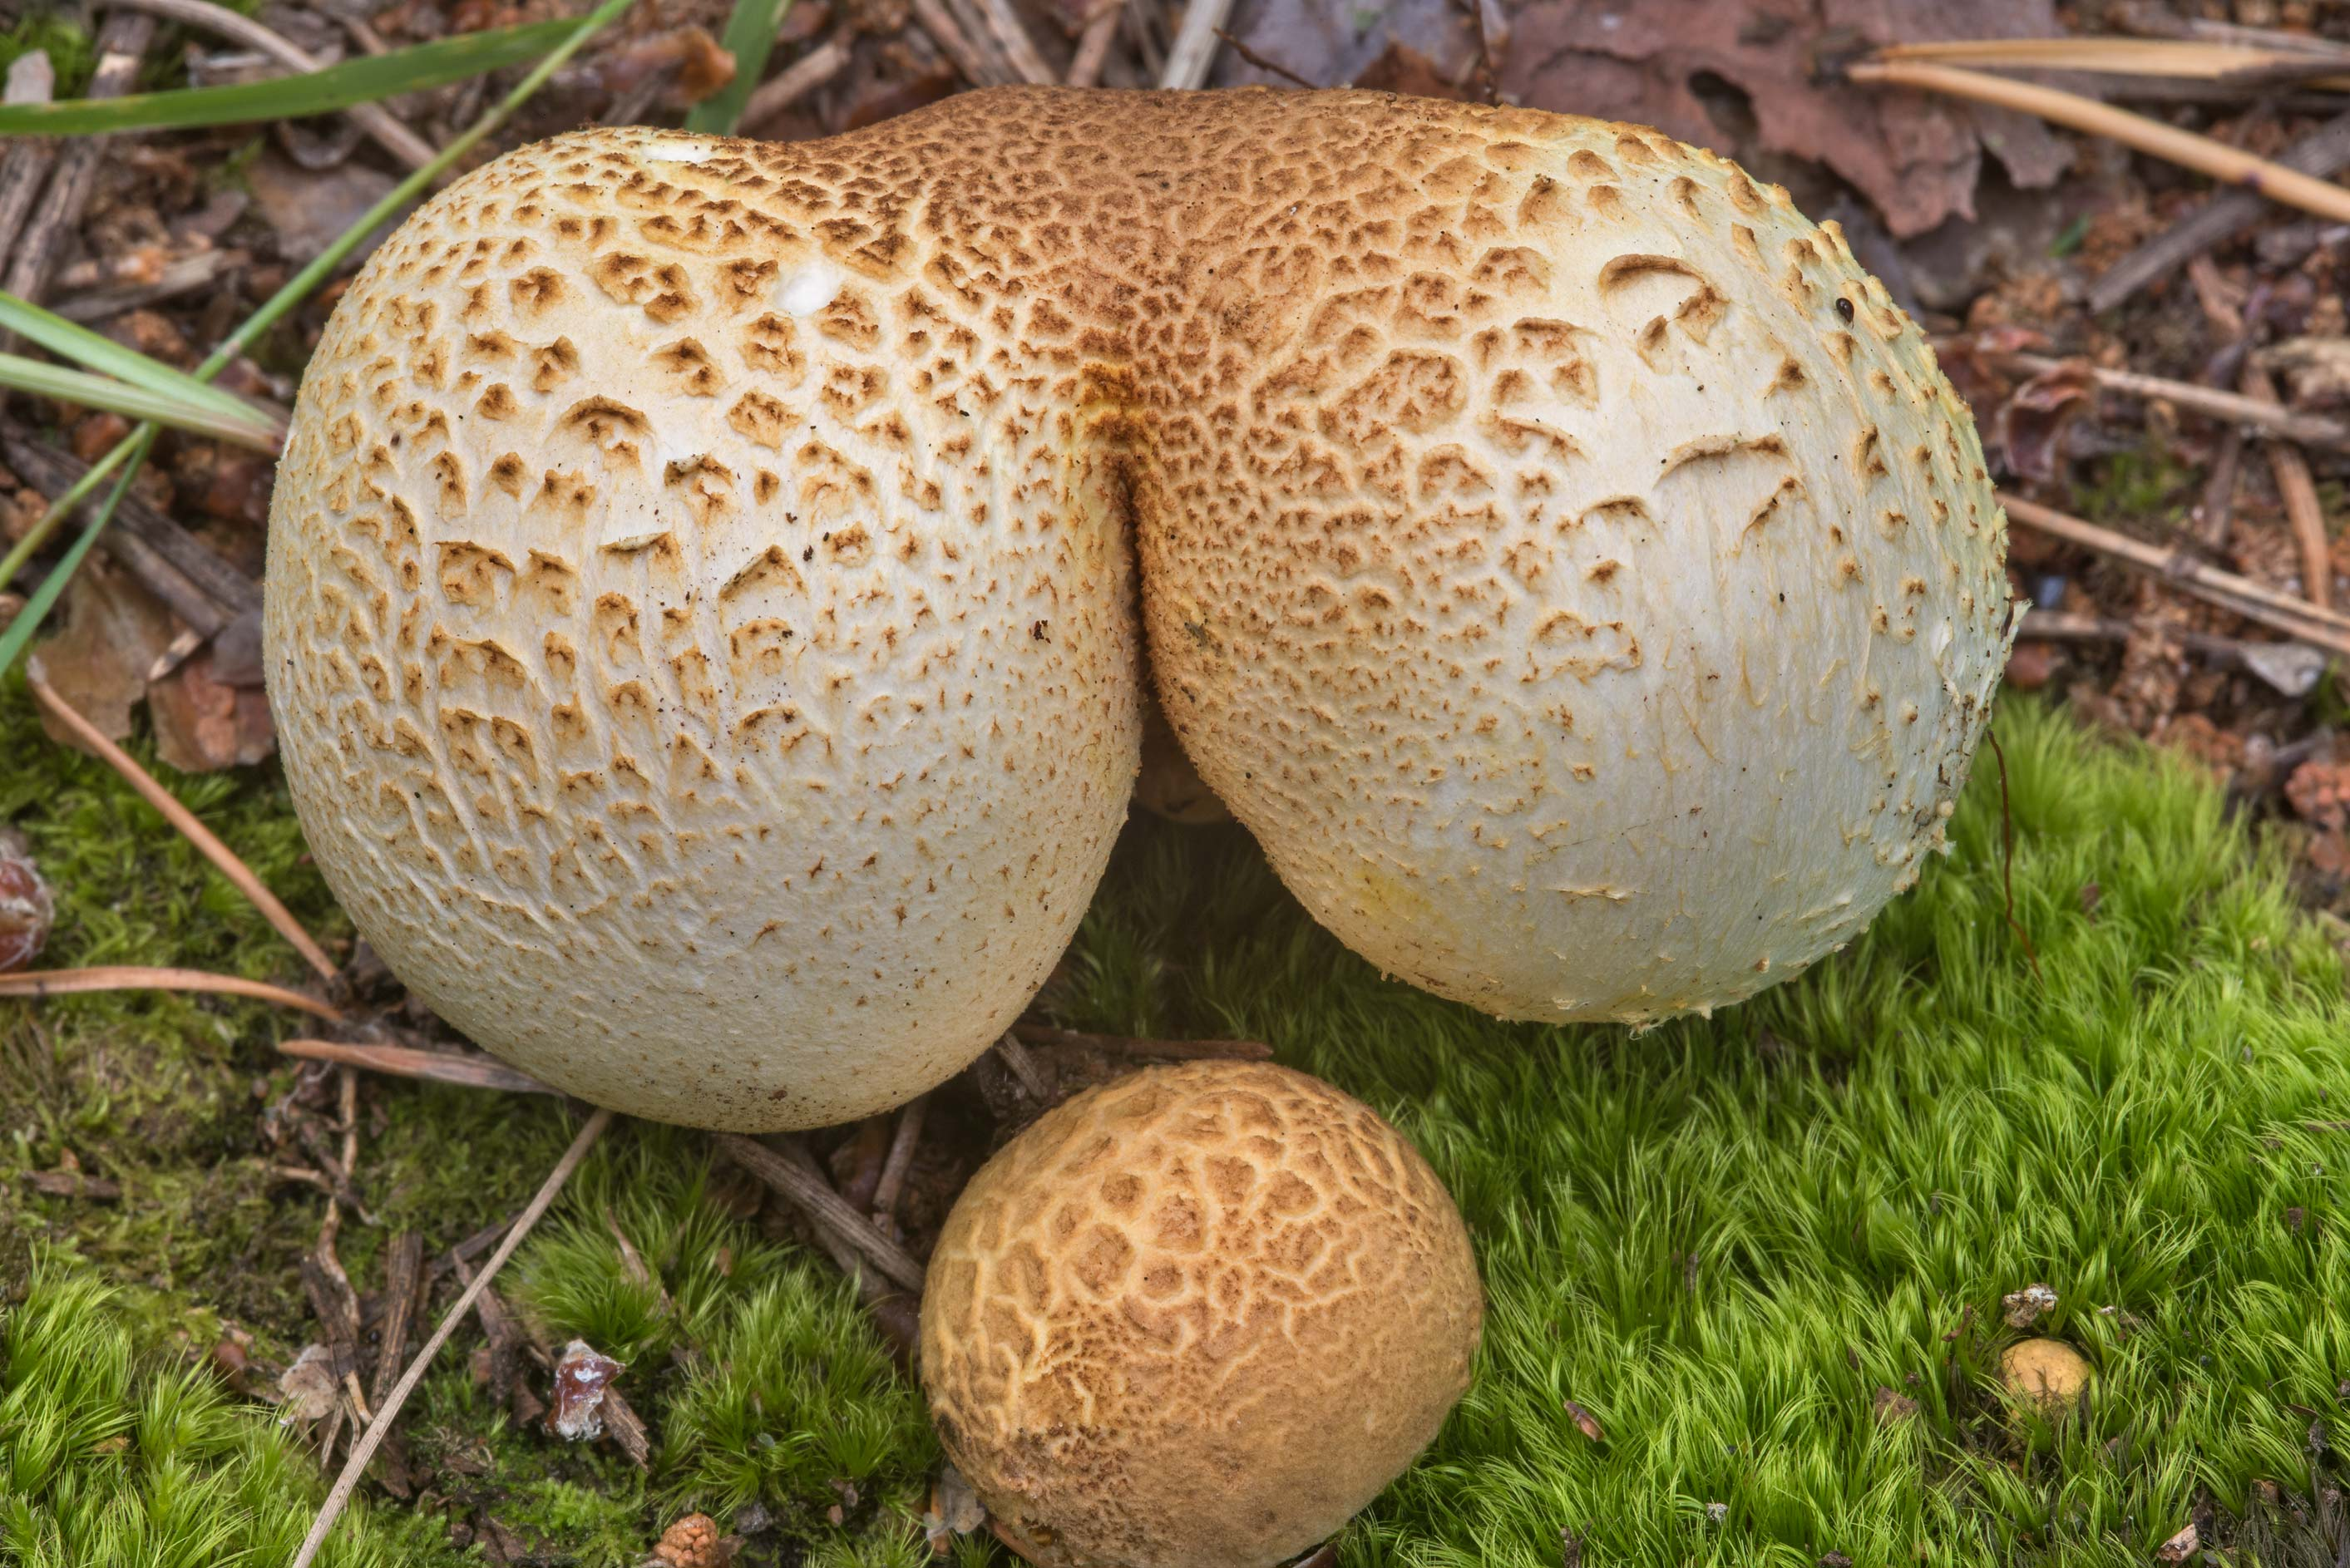 Earthball mushrooms Scleroderma citrinum in...West from St.Petersburg, Russia